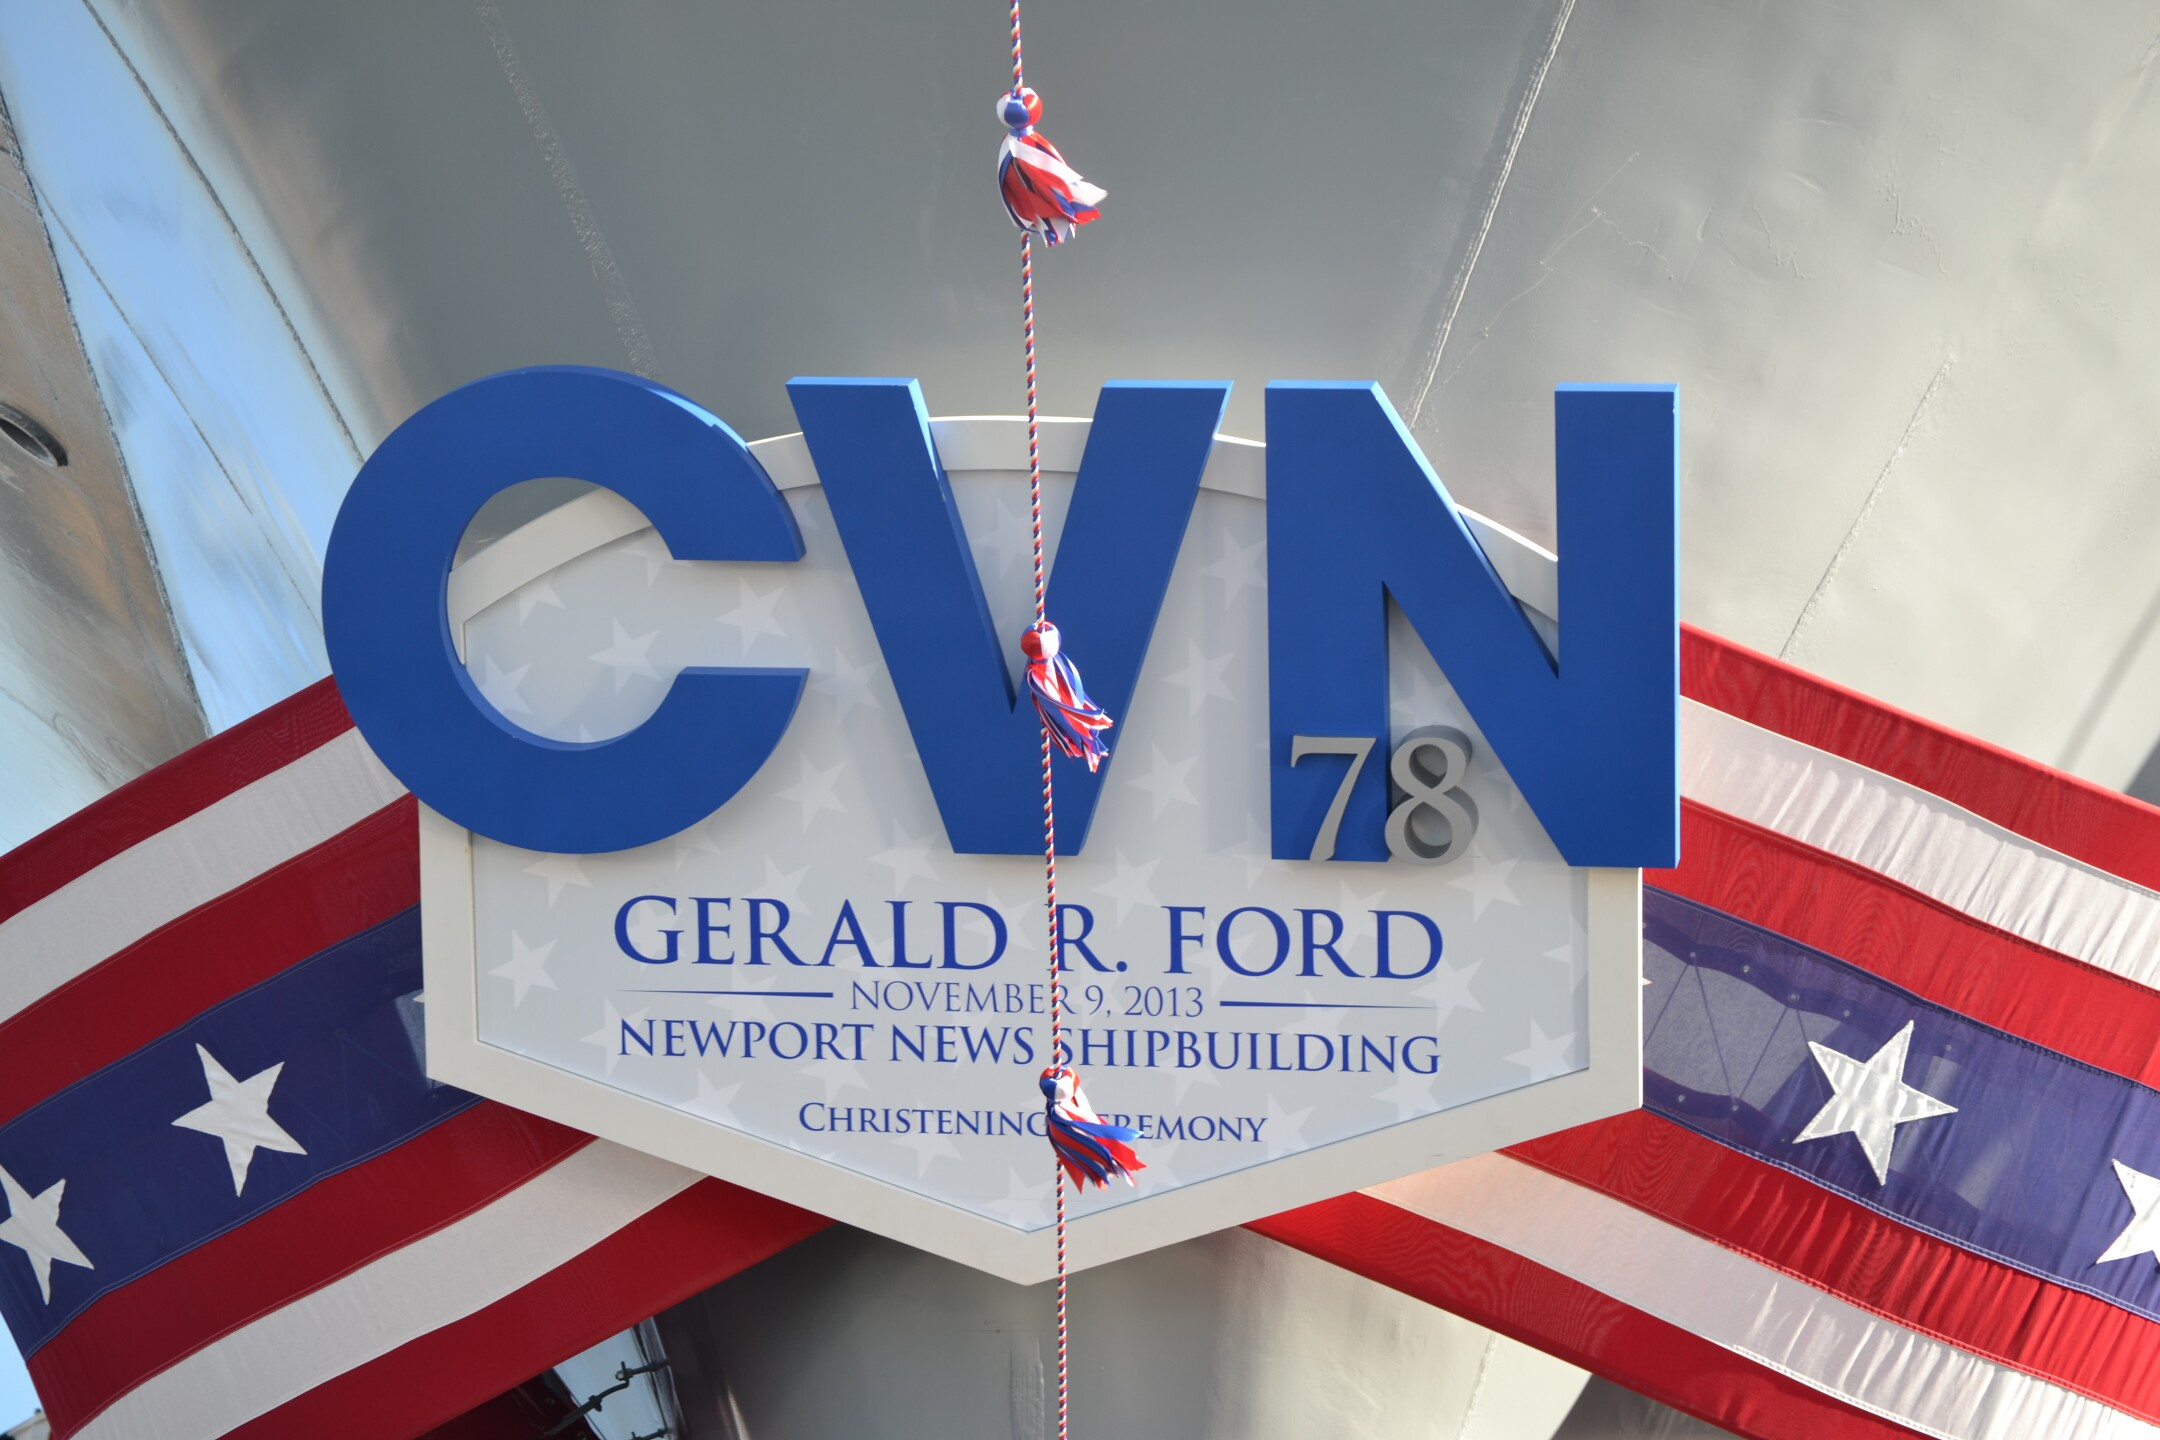 Photos: Aircraft carrier Gerald R. Ford officiallychristened